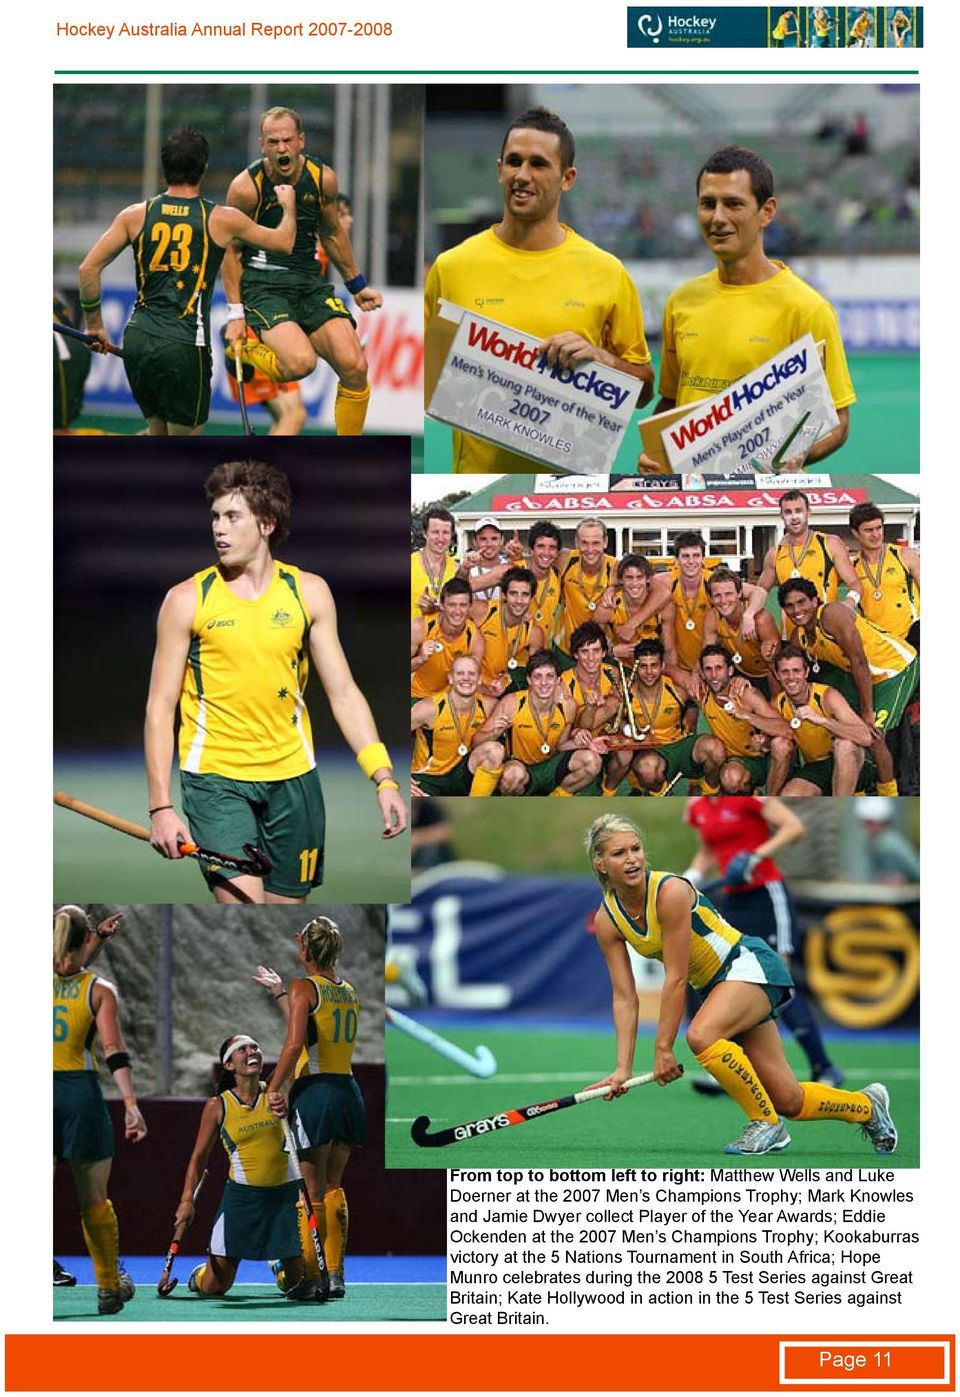 Trophy; Kookaburras victory at the 5 Nations Tournament in South Africa; Hope Munro celebrates during the